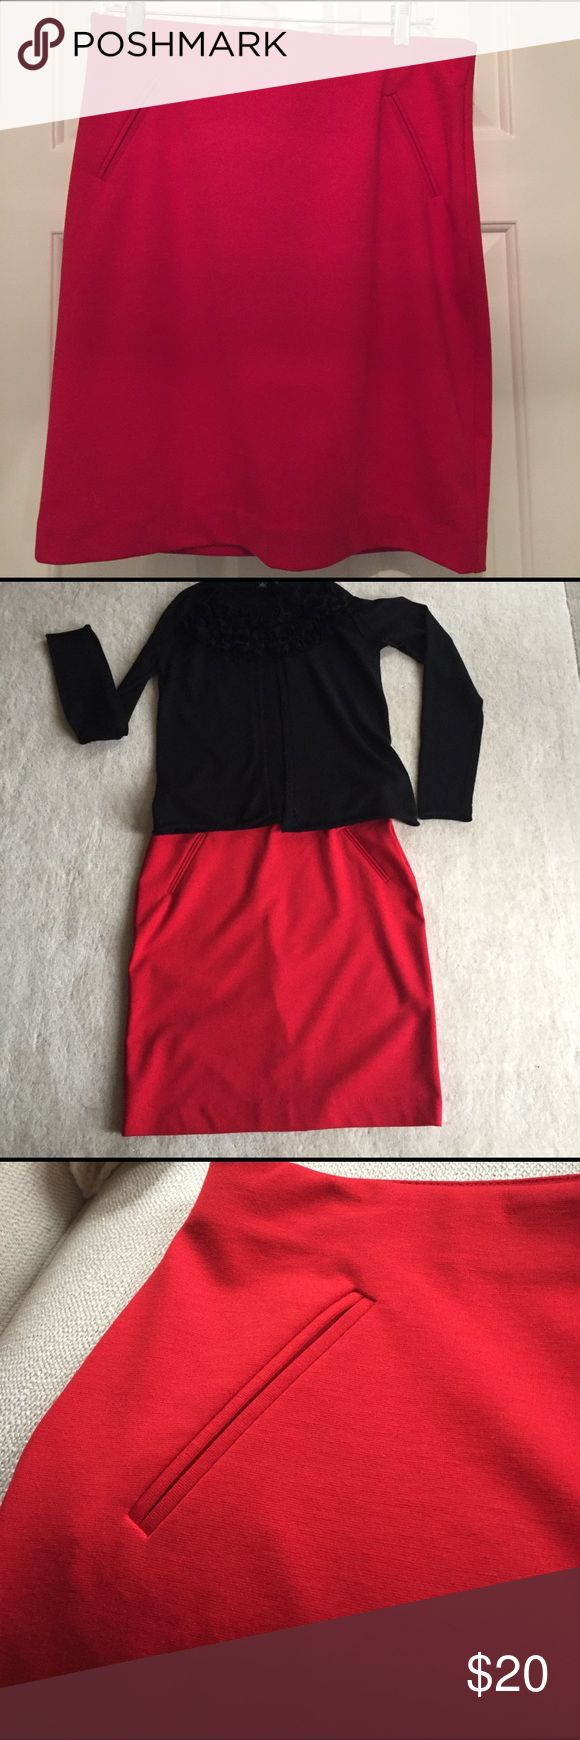 Donna Ricco NY Red Knit Skirt Donna Ricco Knit skirt in beautiful shade of red, never worn, back kick slit still stitched. Comfortable elastic waistband. Machine wash cold. Content is Viscose, Polyester & Elastane. Donna Ricco Skirts Midi